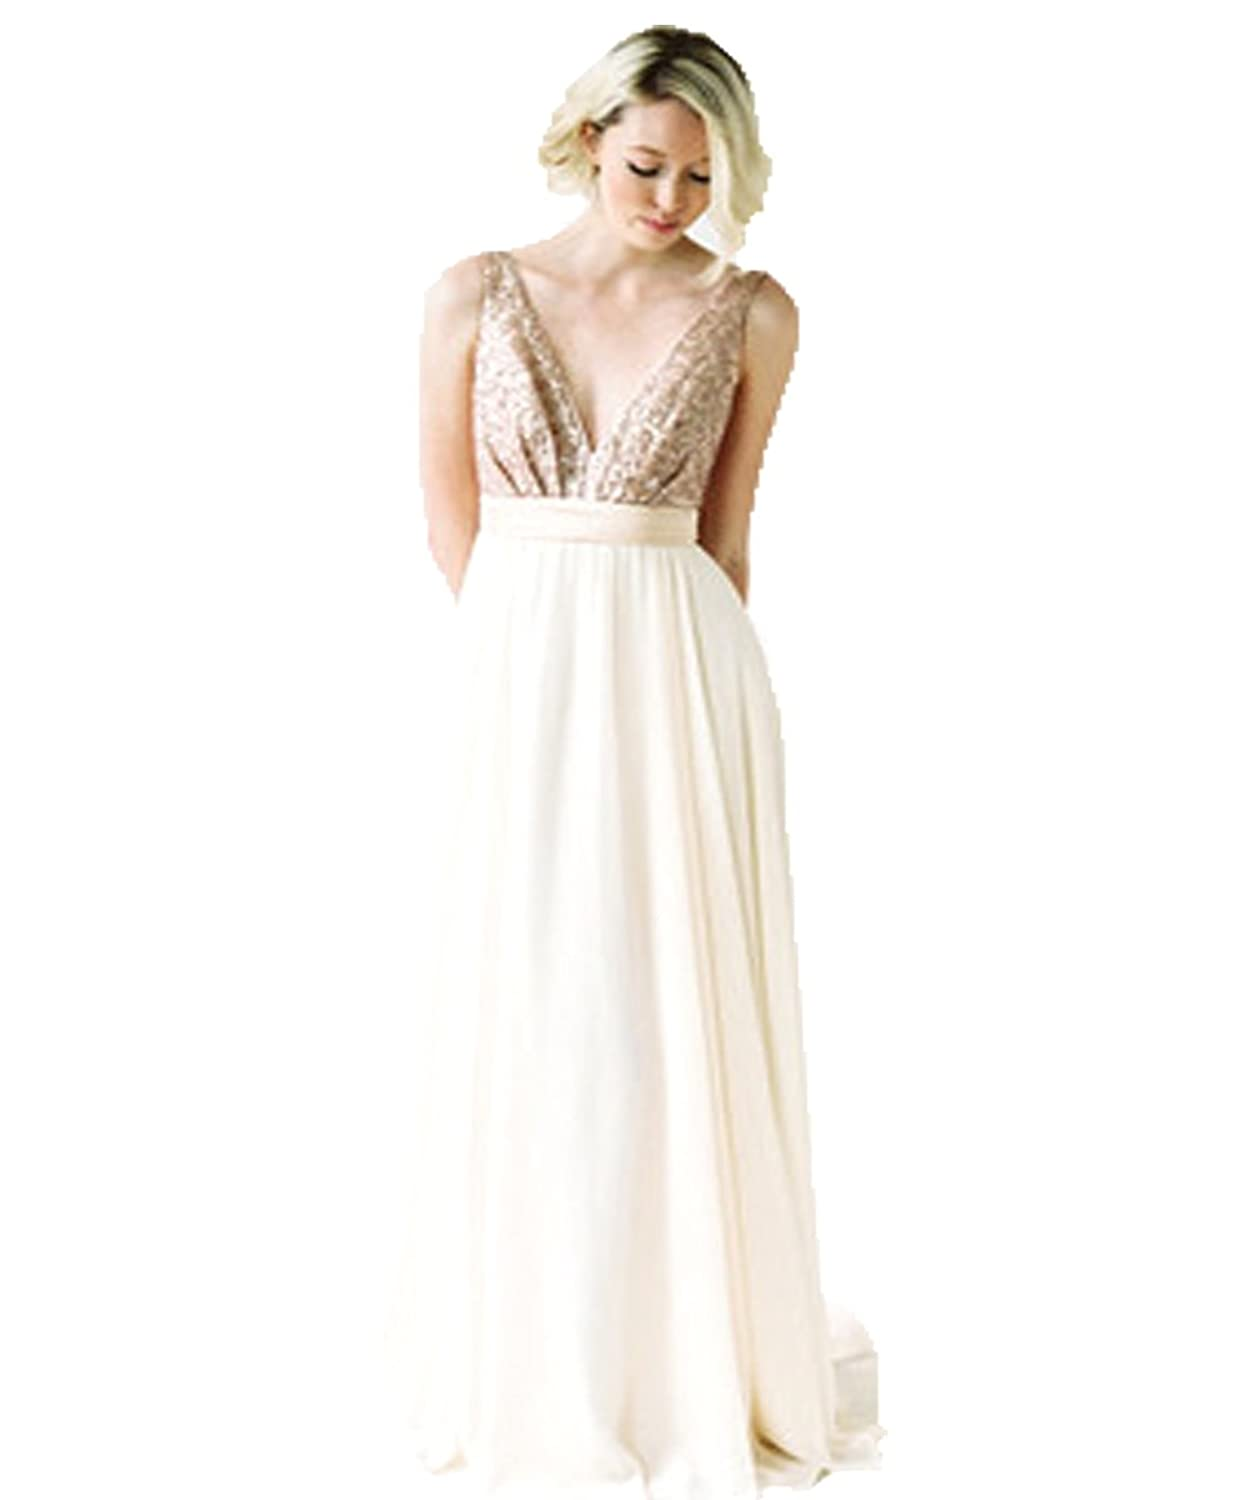 VIPbridal Champagne Chiffon Sequins A line Bridesmaid Dress